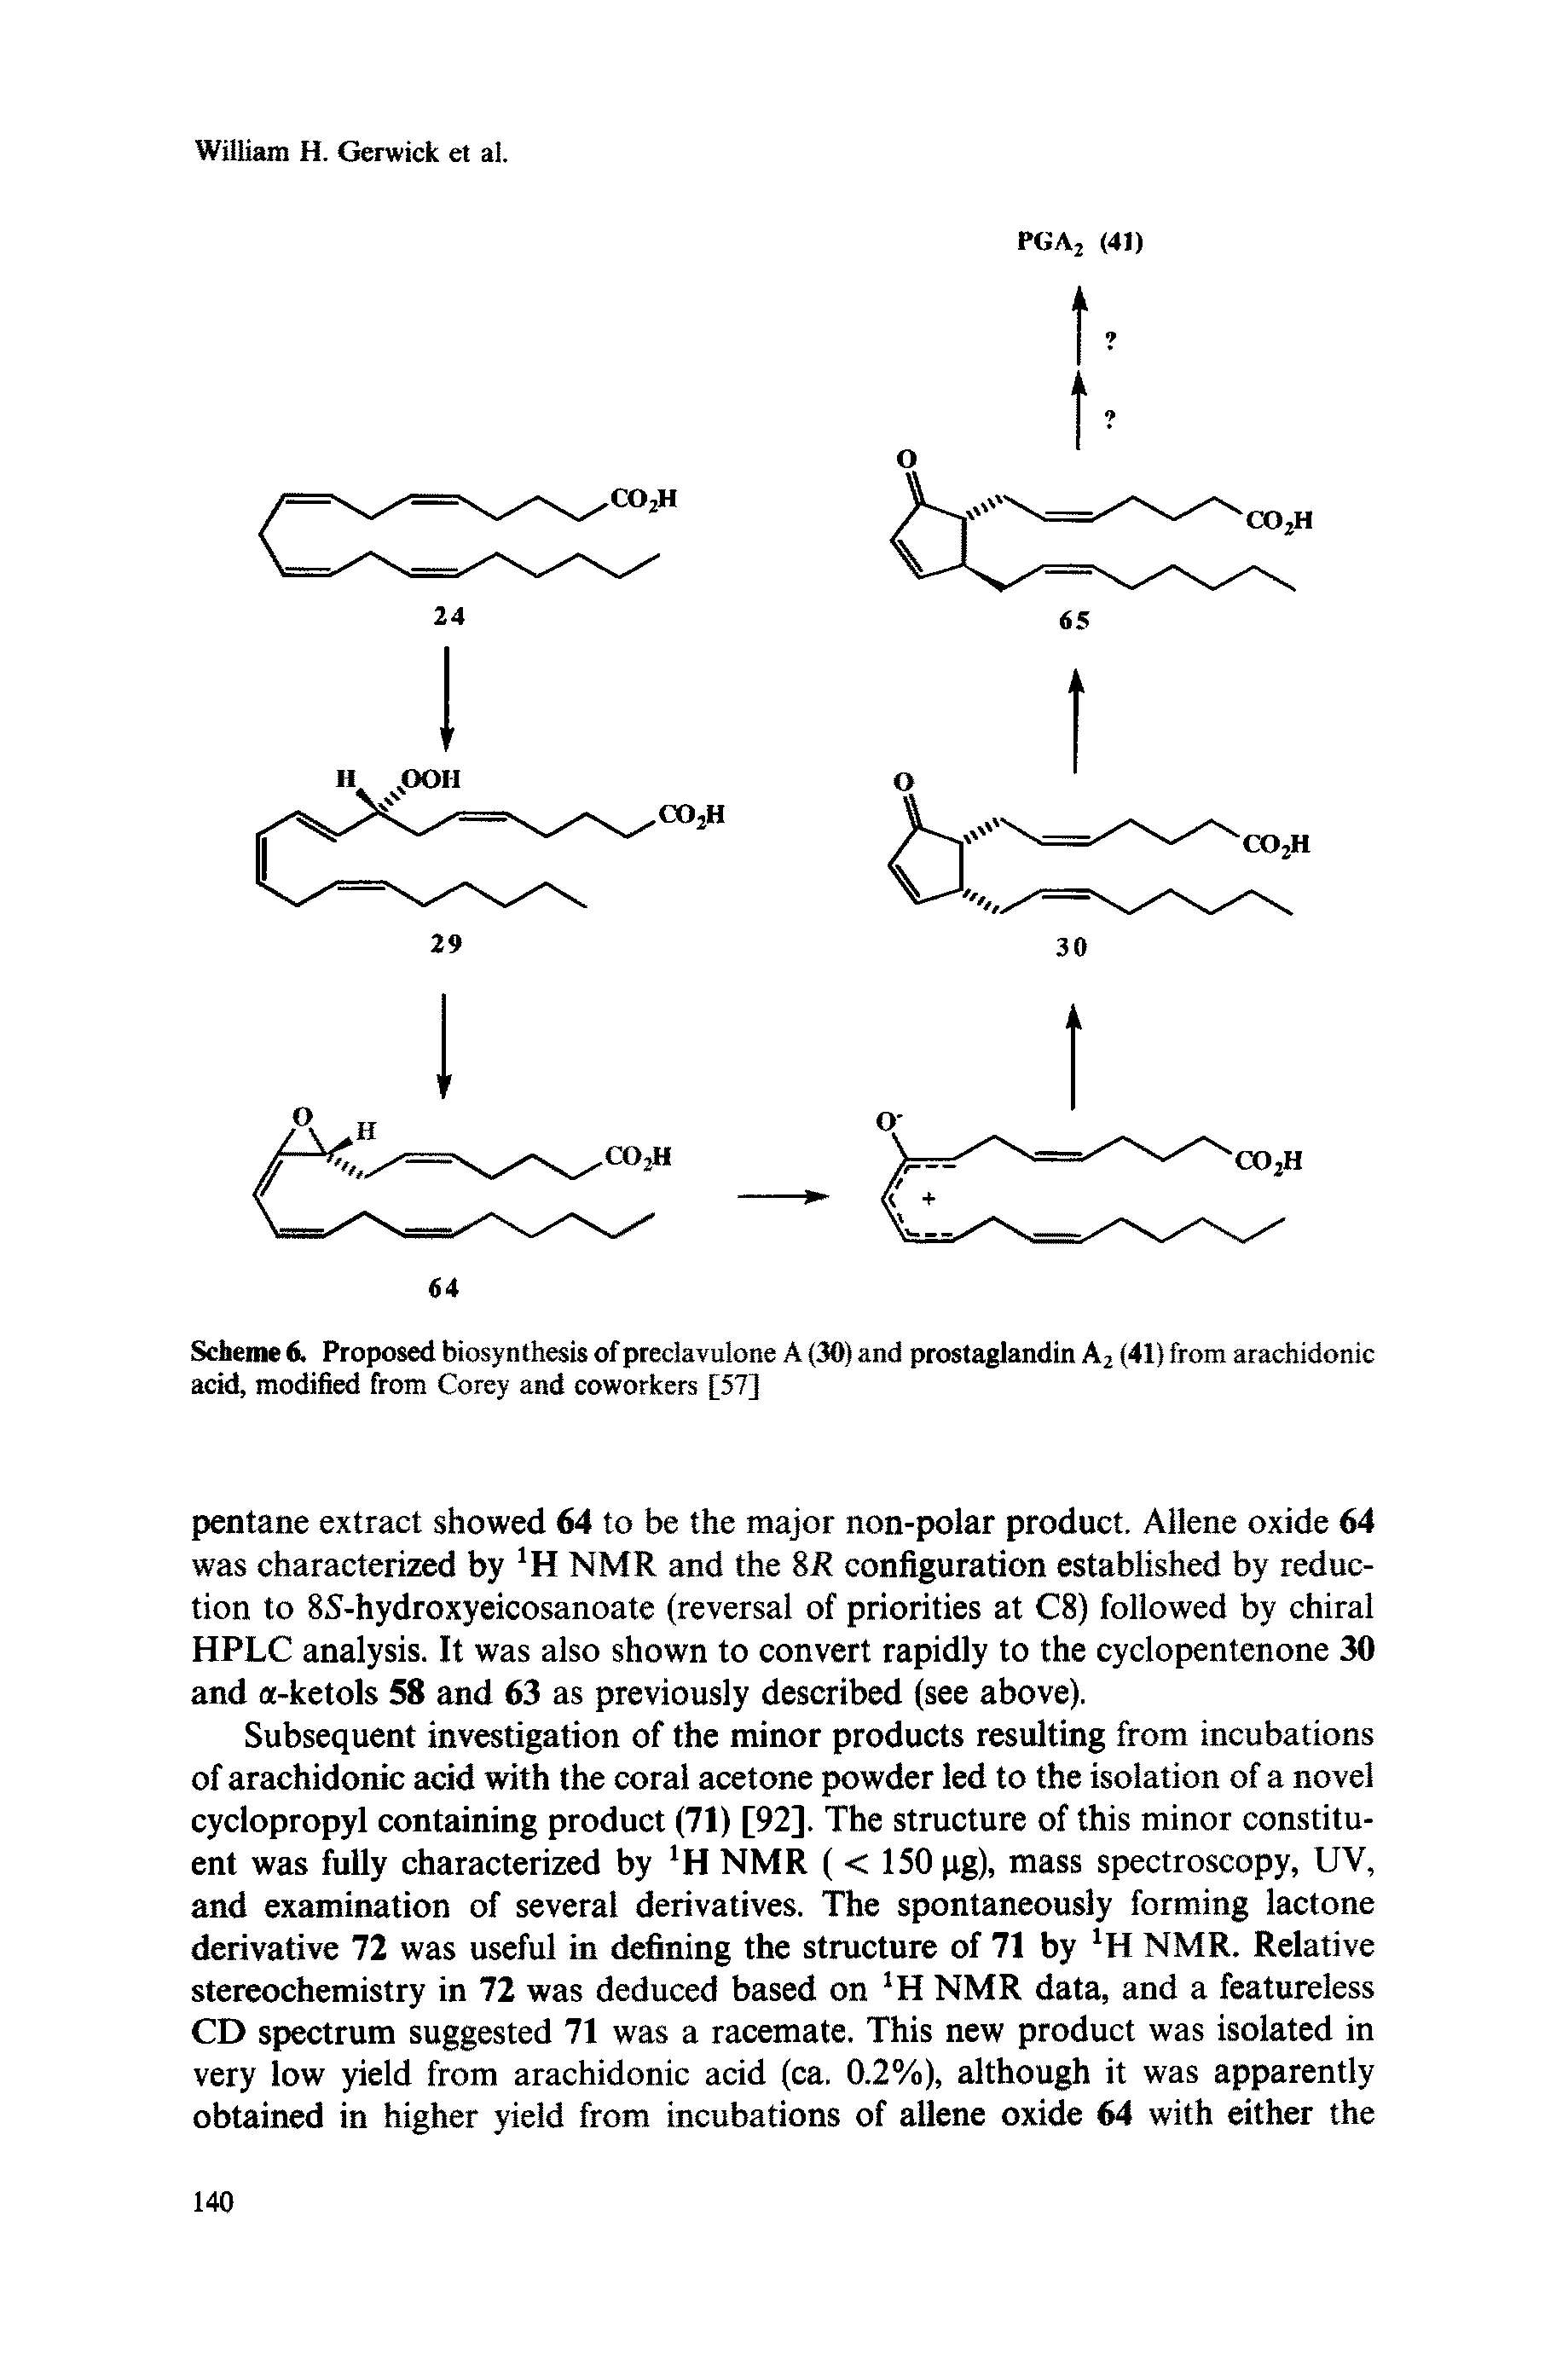 "Scheme 6. Proposed biosynthesis of preelavulone A (30) and prostaglandin A2 (41) from <a href=""/info/arachidonic_acid"">arachidonic acid</a>, modified from Corey and coworkers [57]"